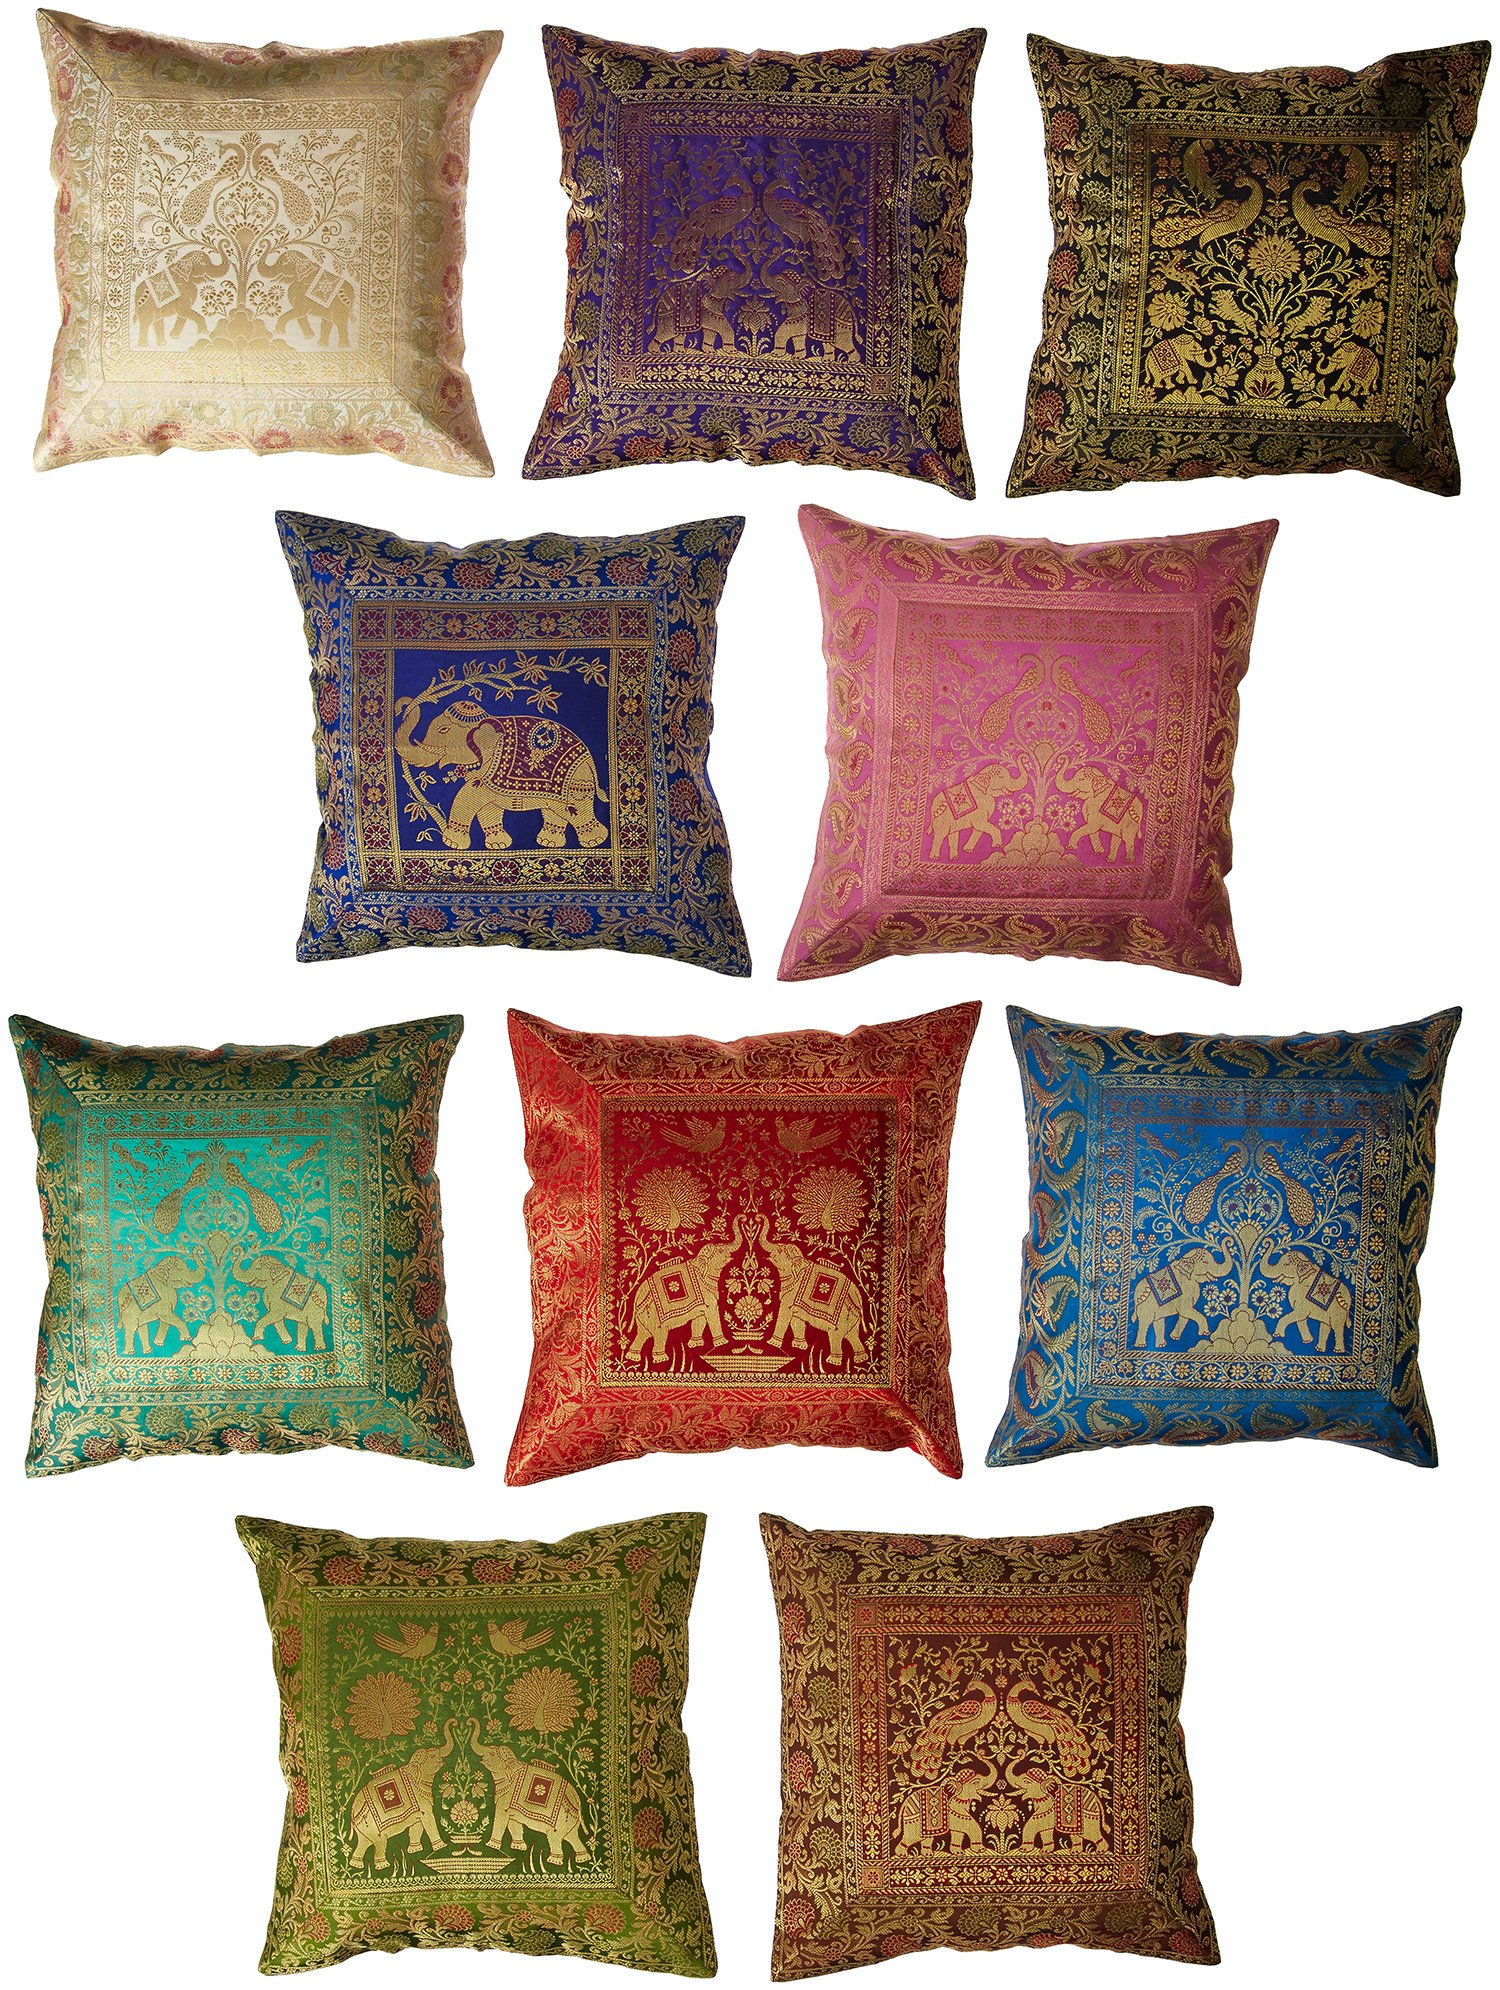 10 Pc Lot Square Silk Home Decor Cushion Cover, Indian Silk Brocade Pillow Cover , Handmade Banarsi Pillow Cover 16 X 16 Inch by Third Eye Export